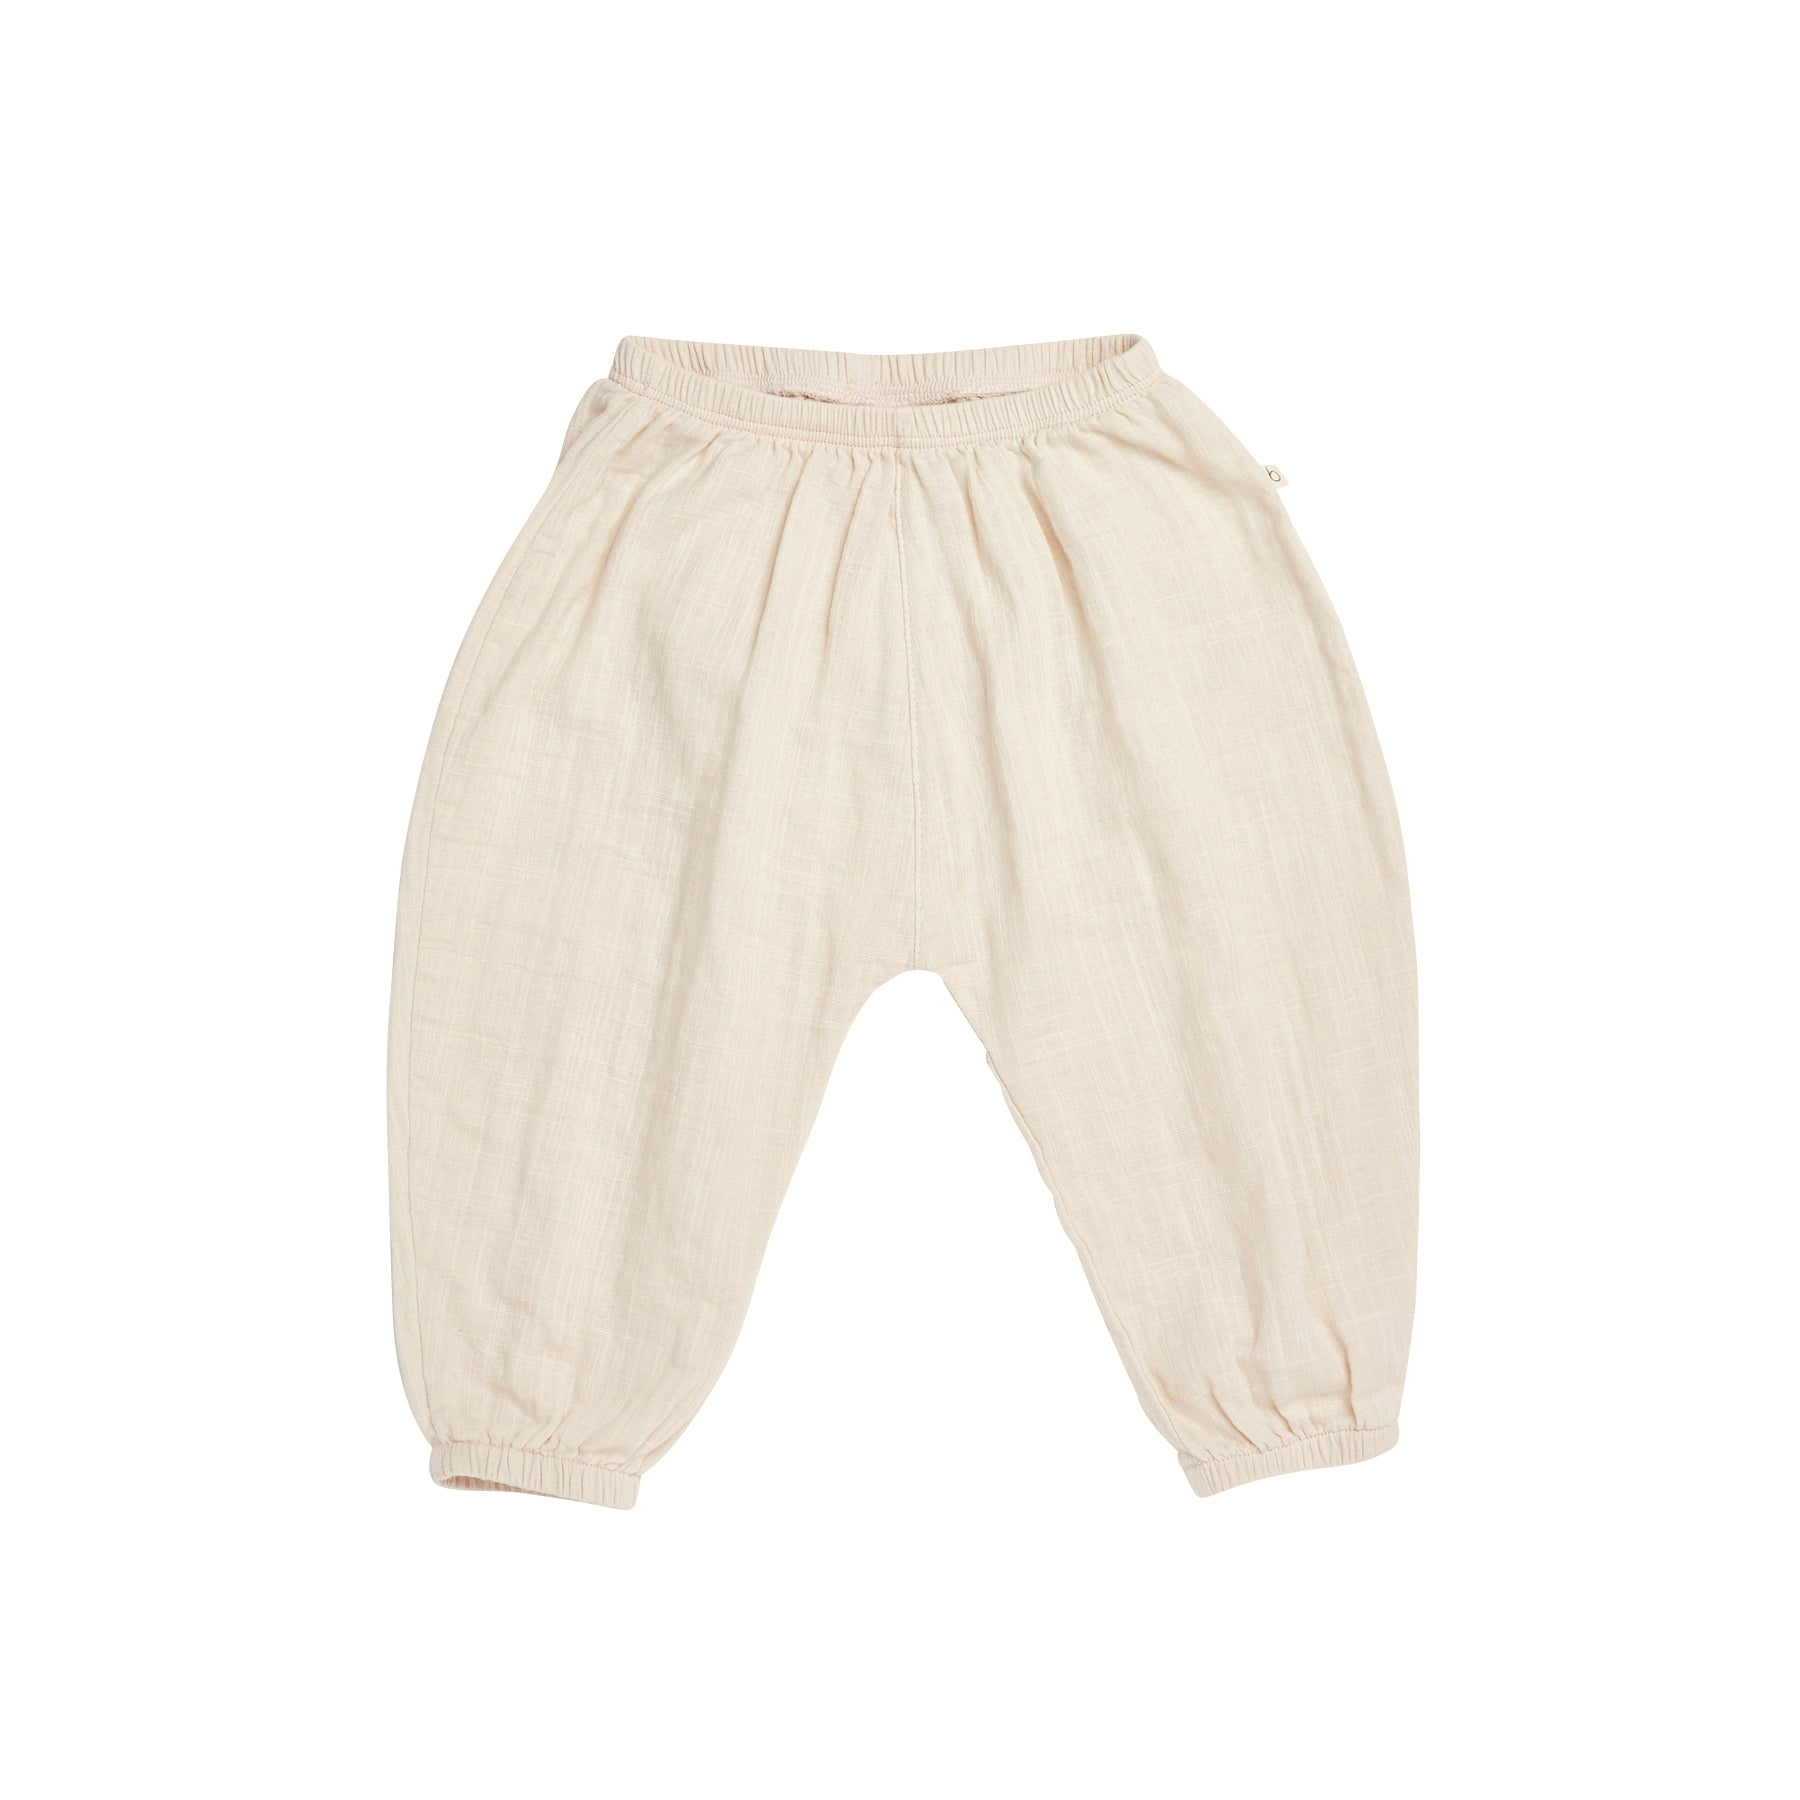 Bacabuche Lightweight Pant in Blush - Unisex Baby/Toddler | BIEN BIEN